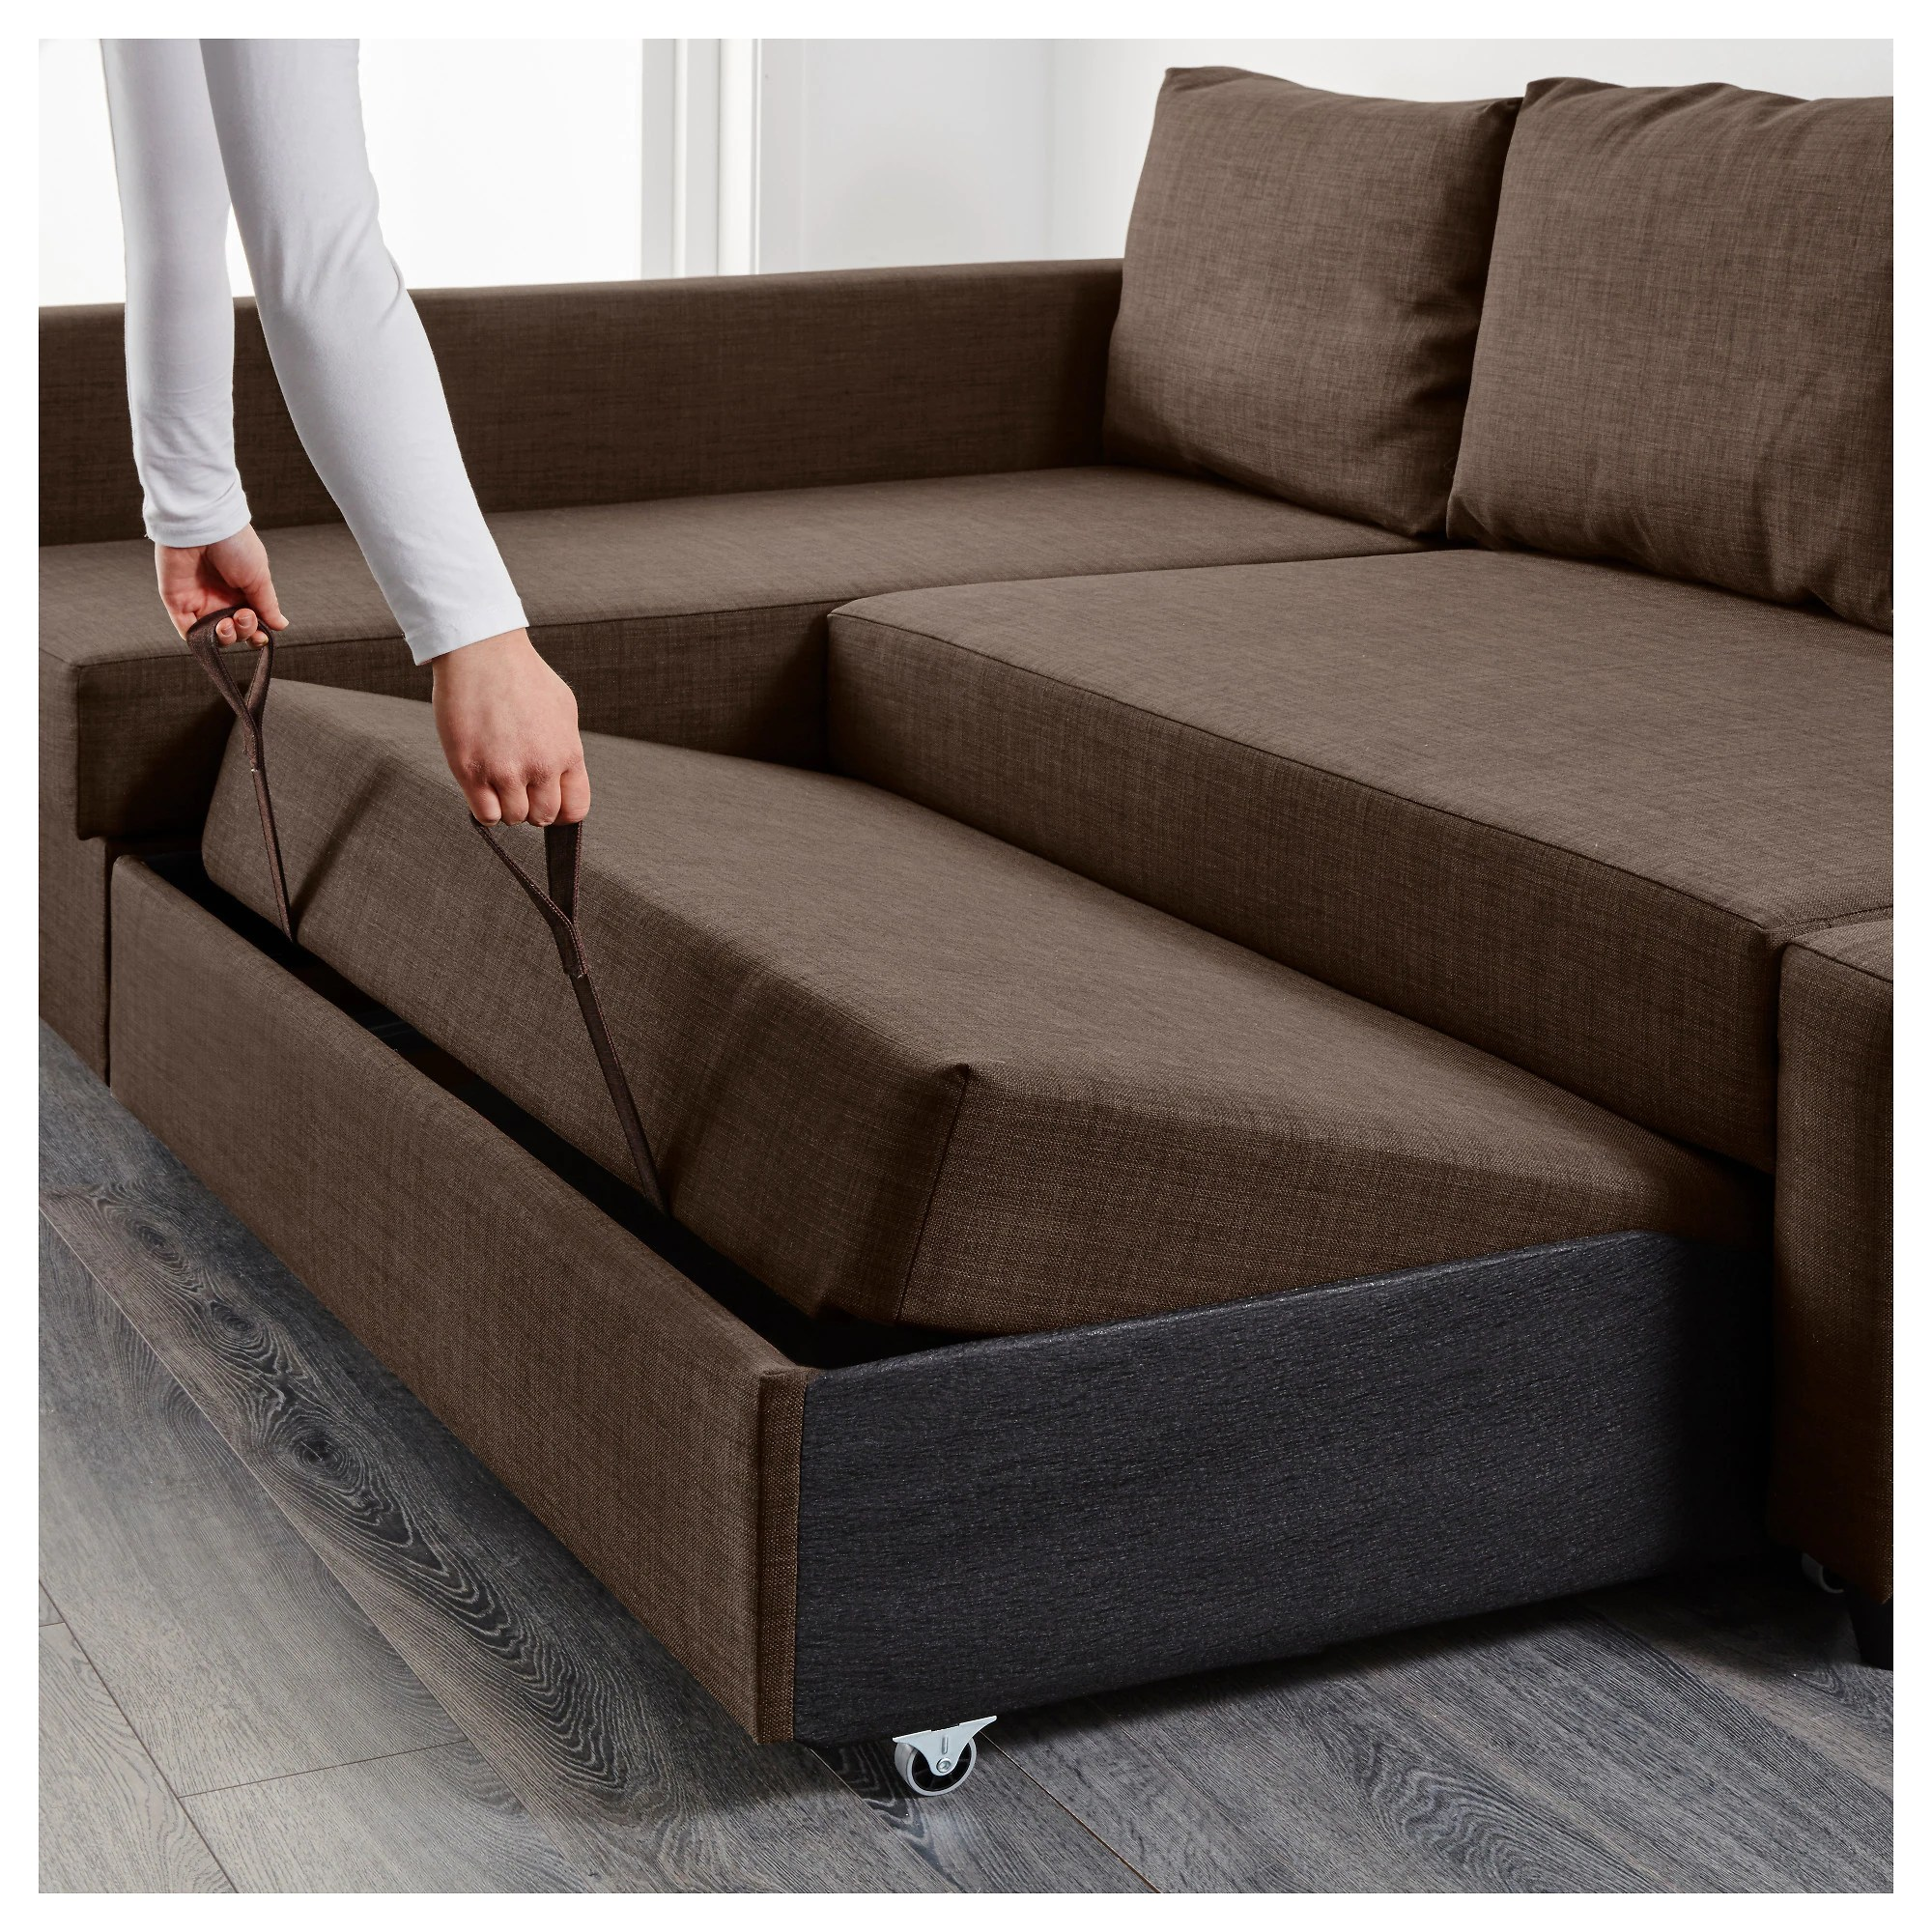 Bettsofa Ikea Friheten Friheten Sleeper Sectional 3 Seat W Storage Skiftebo Dark Gray